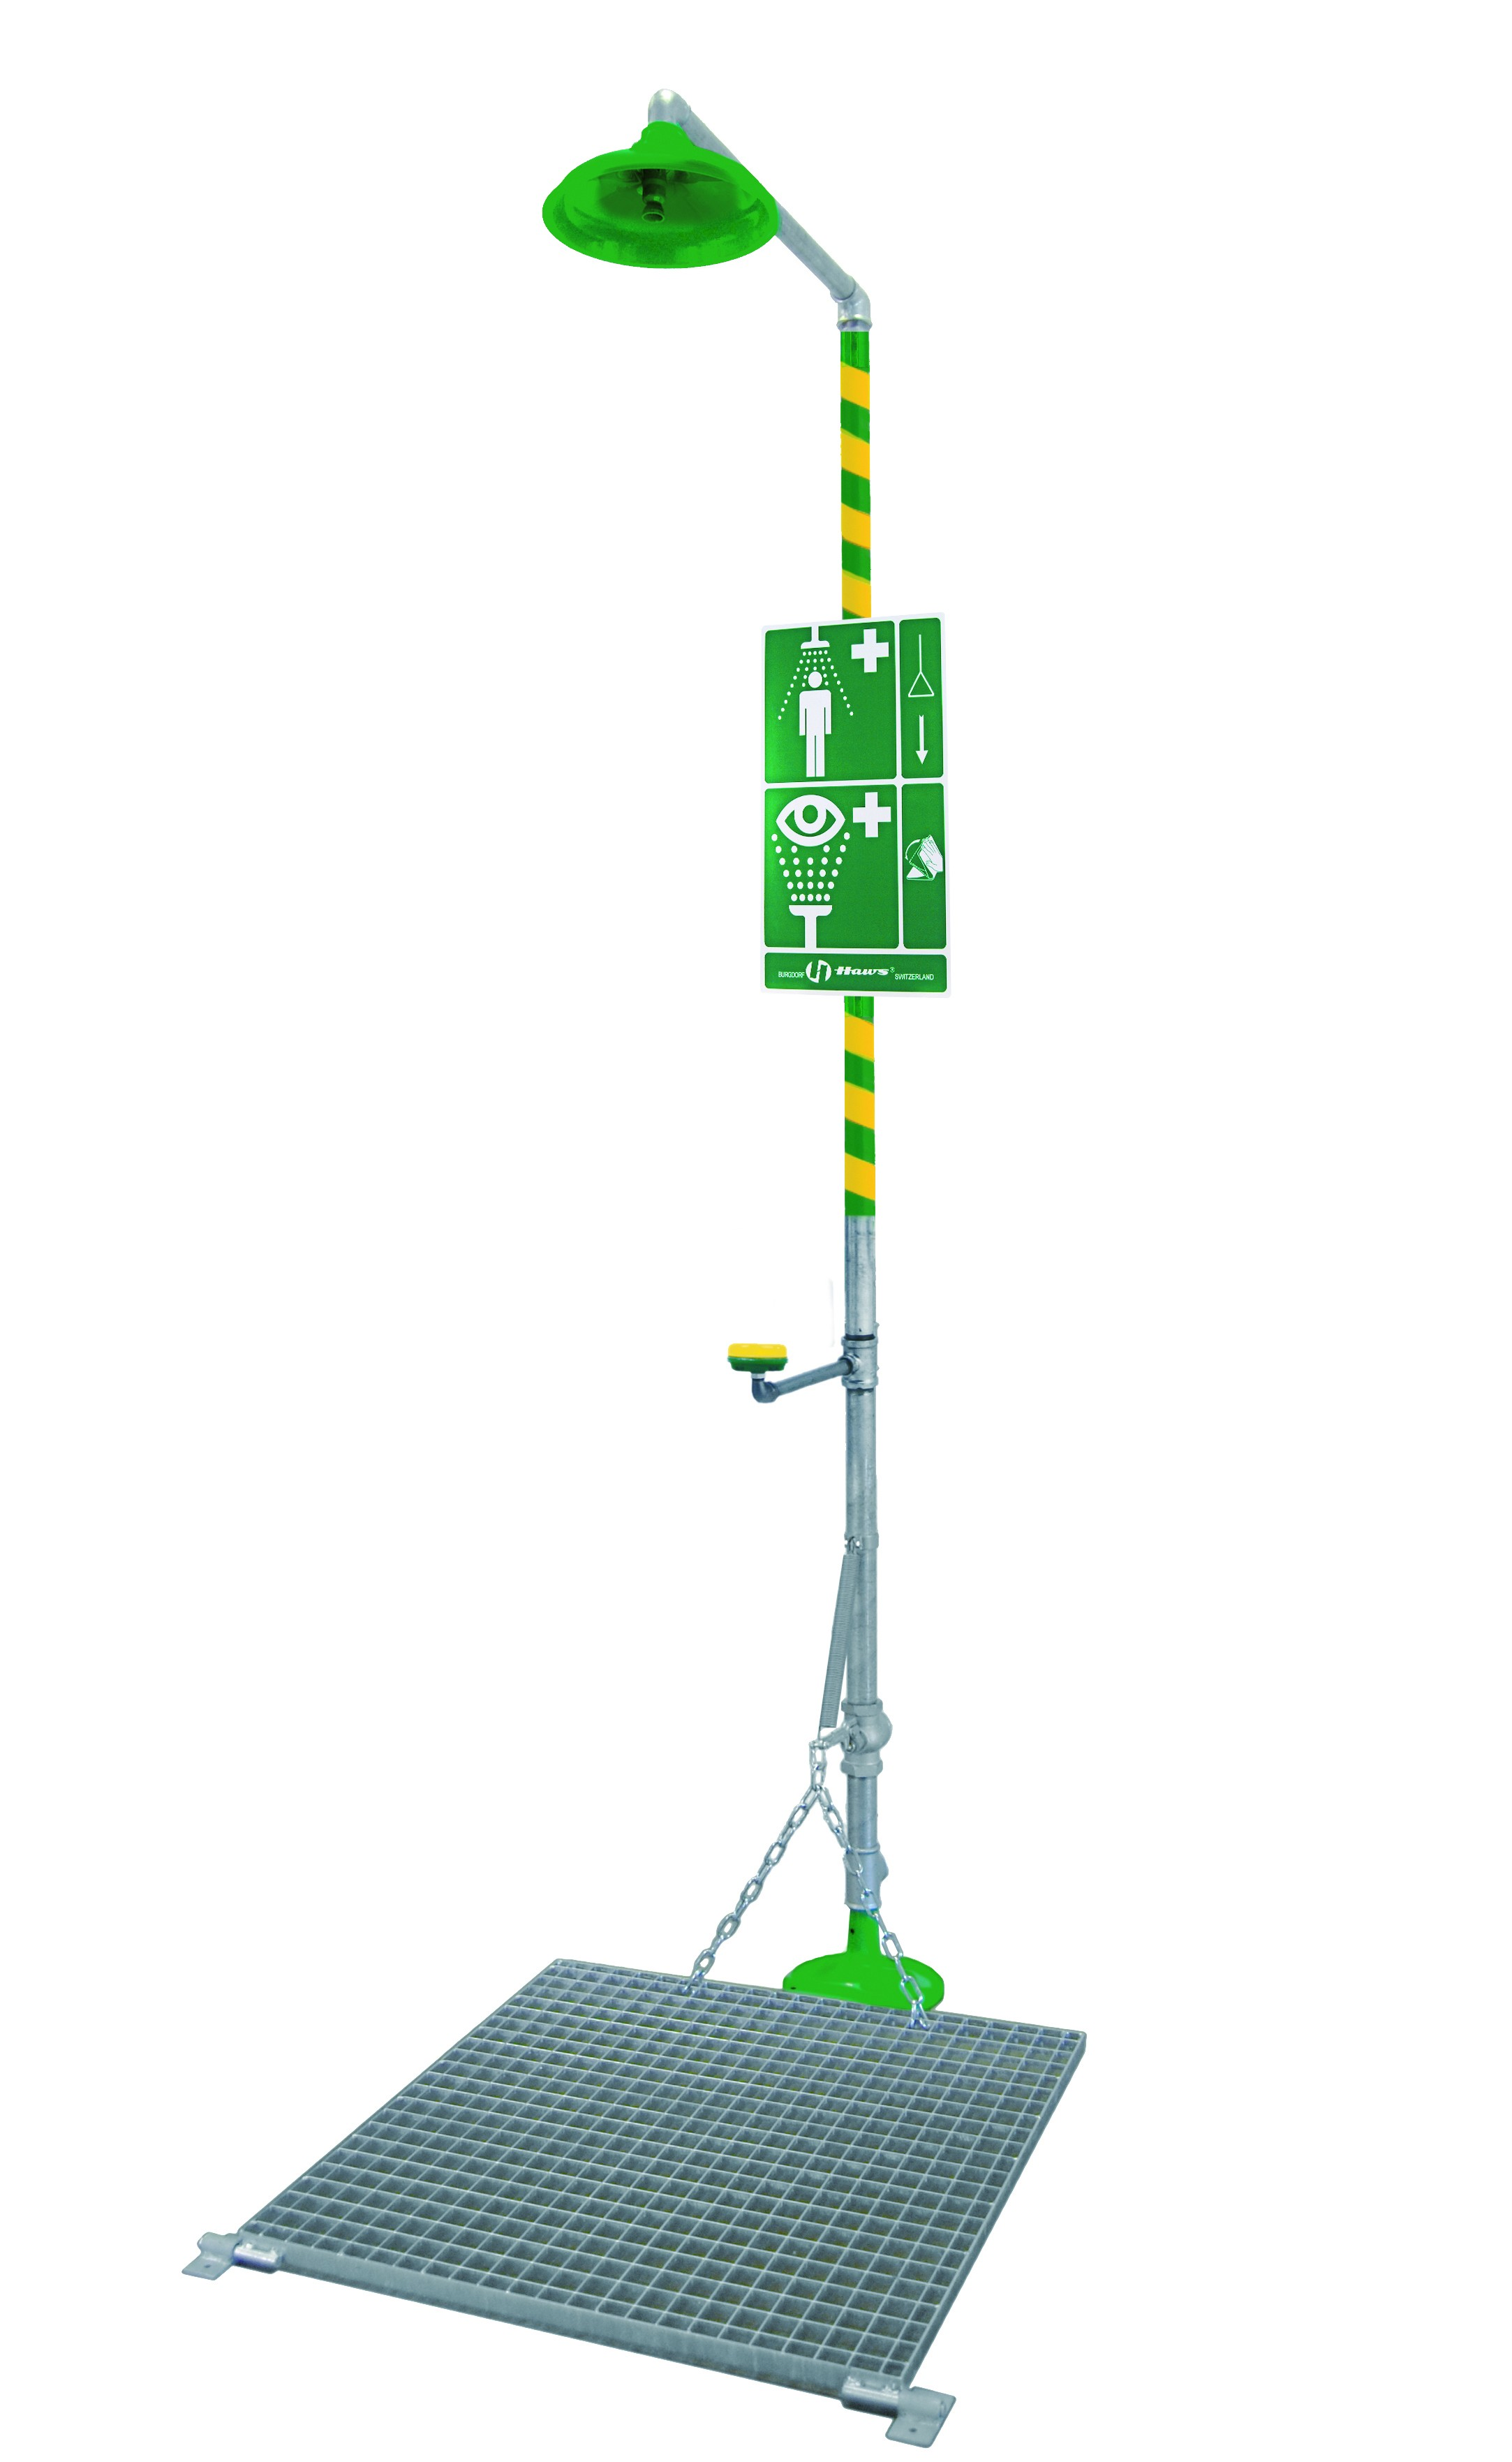 AXION� MSR Emergency Shower and Eye/Face Wash with grate Model: EU-8327